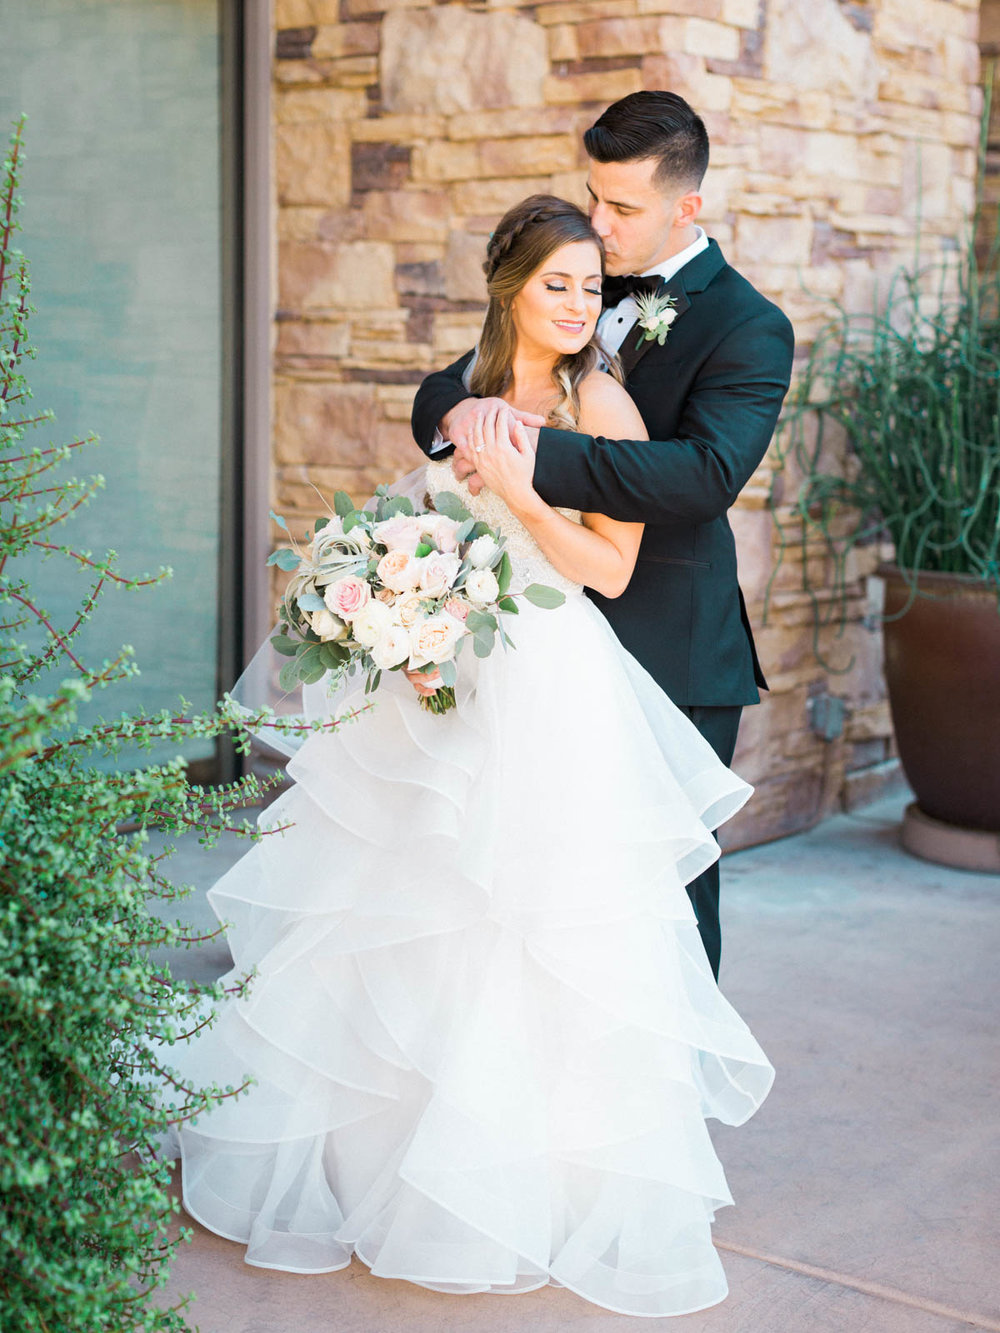 JW Marriott Starr Pass wedding captured by Tucson Wedding Photographers Betsy & John